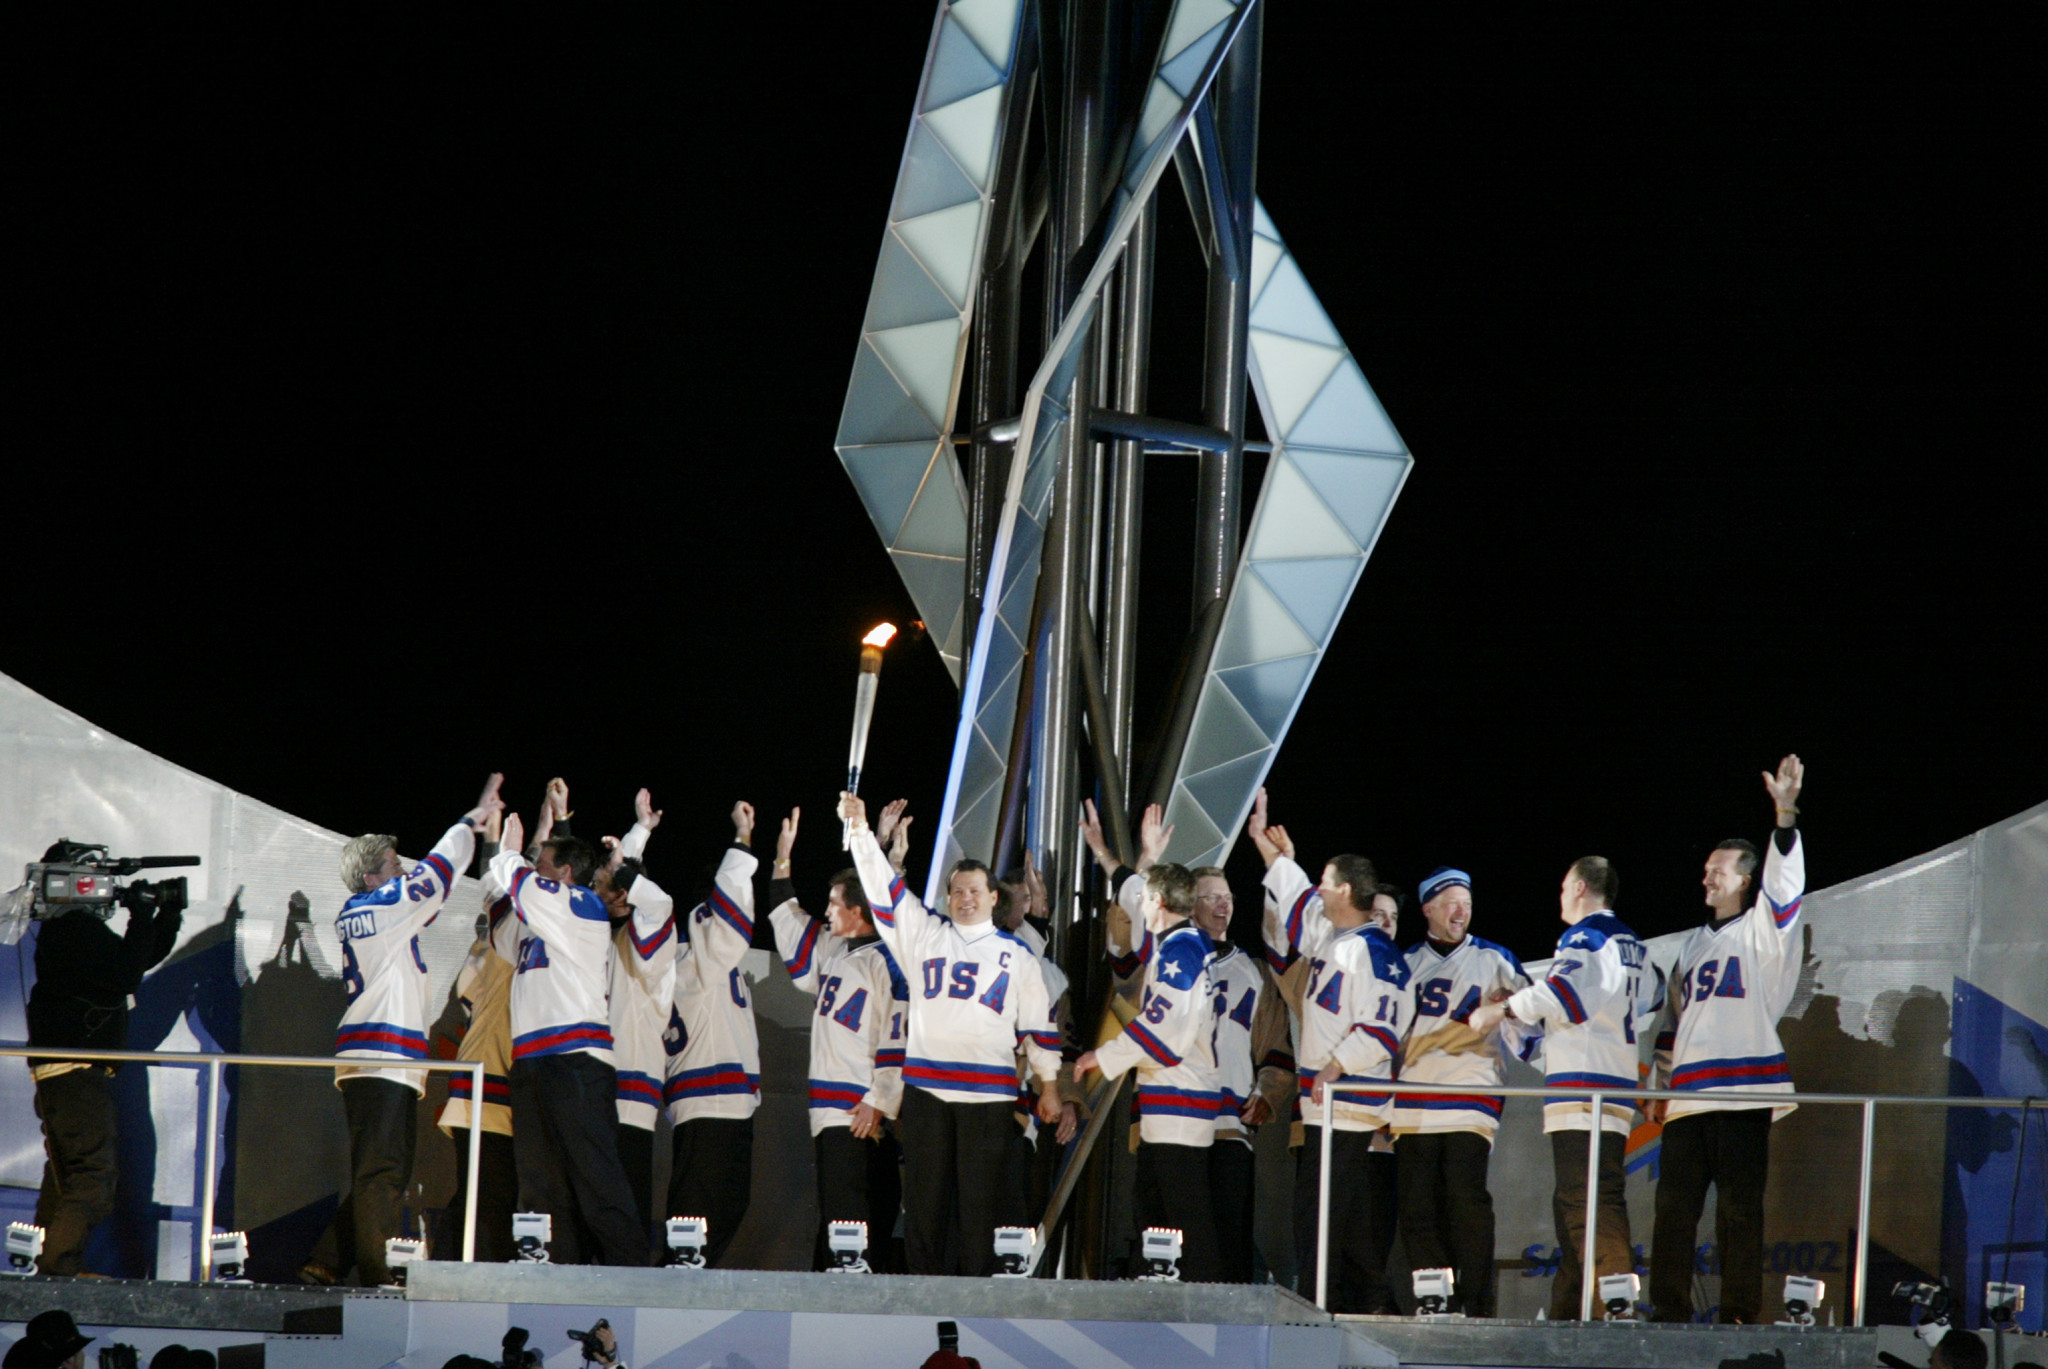 The US team which won the ice hockey title at the Lake Placid 1980 Olympics lights the Cauldron at the Opening Ceremony of the Salt Lake City 2002 Winter Games ©Getty Images